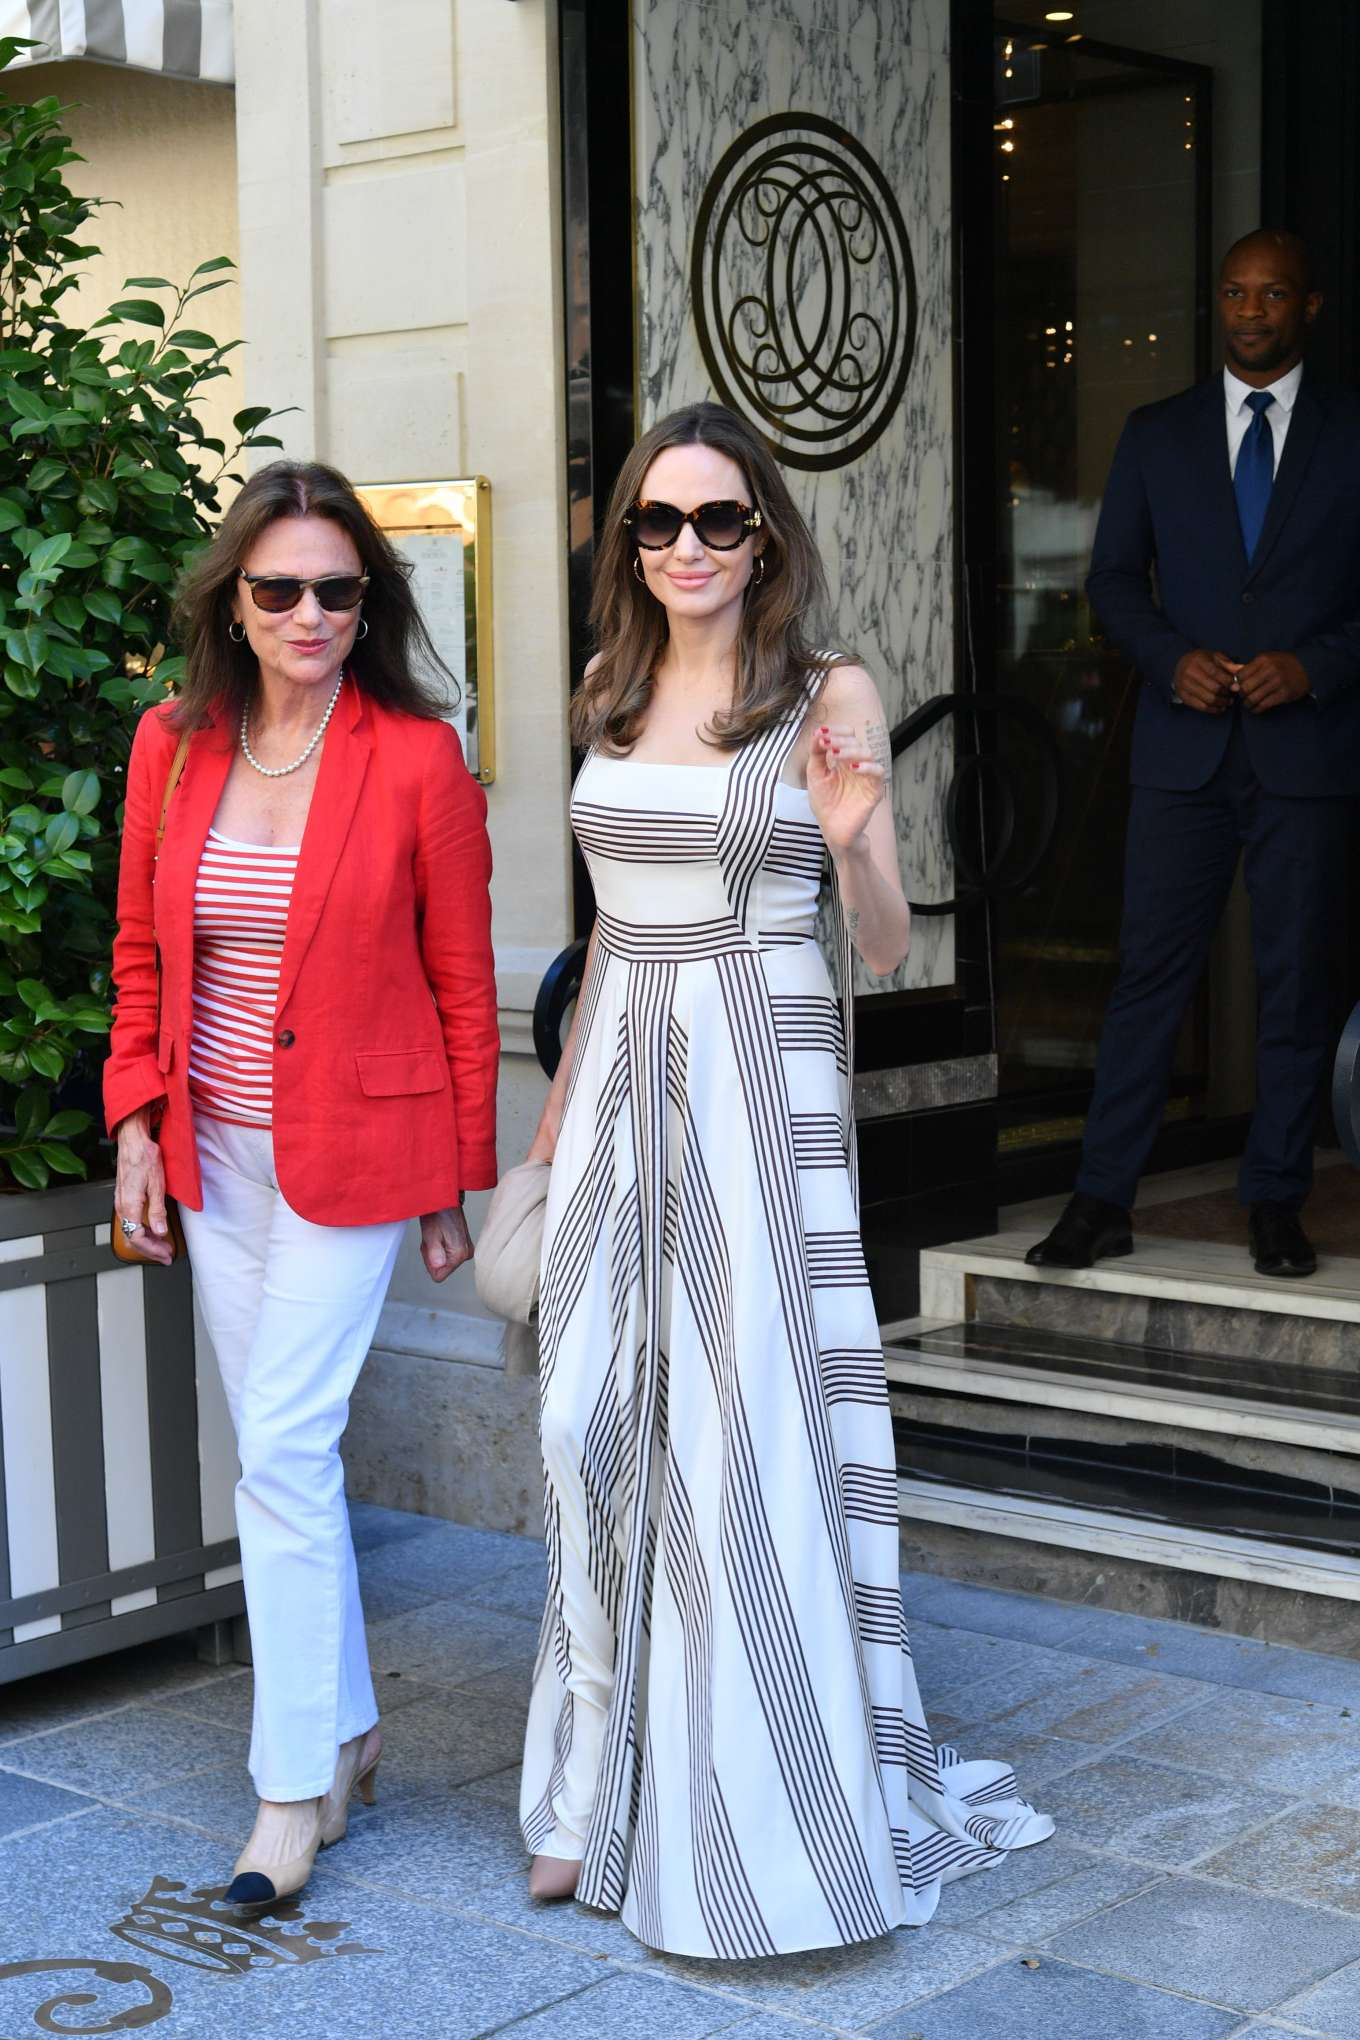 Angelina Jolie, white and black dress, black Louis Vuitton sunglasses, flared hem, straps, square neck, flowing, striped, floor scraping, a line dress, paneled, gatheres. Angelina Jolie rocking a Striped Loro Piana white maxi dress with shoulder straps actually extend down the back into ribbons, a square neck, straps and flared hem